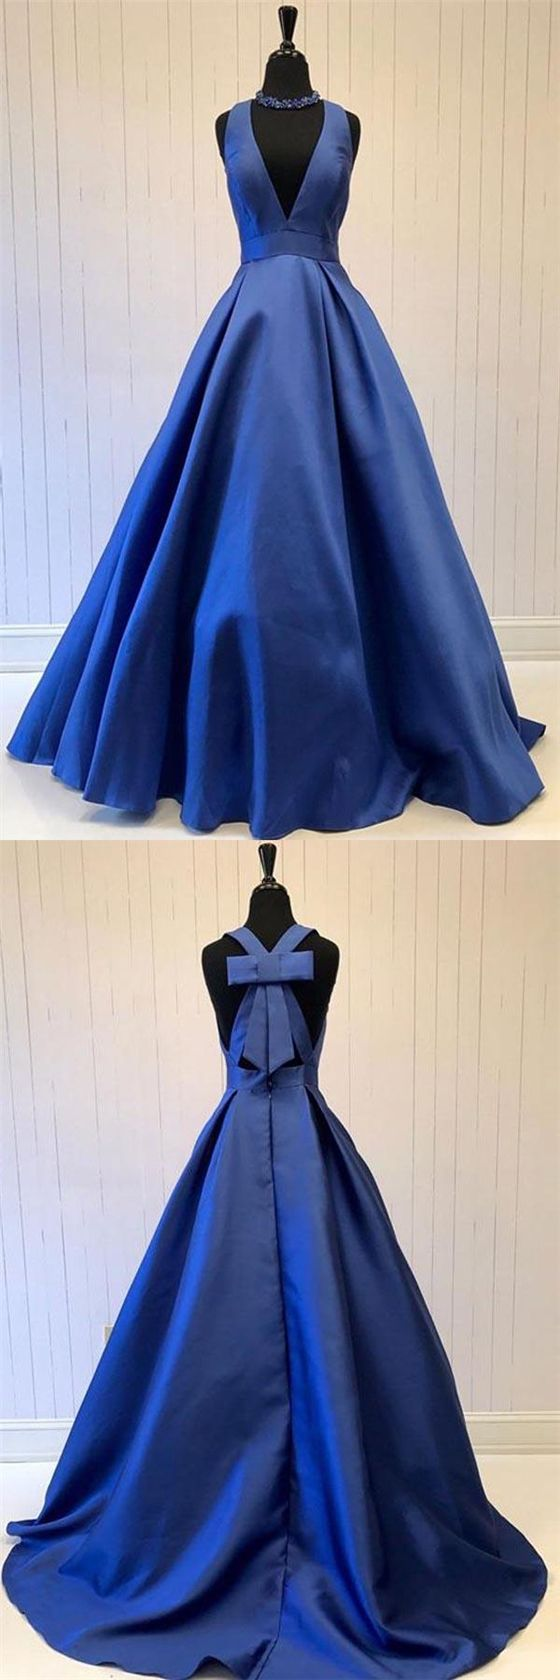 Wedding - V-neck Royal Blue Satin A-line Prom Dresses, Special Back Design Prom Dress, Prom Dresses, PD0359